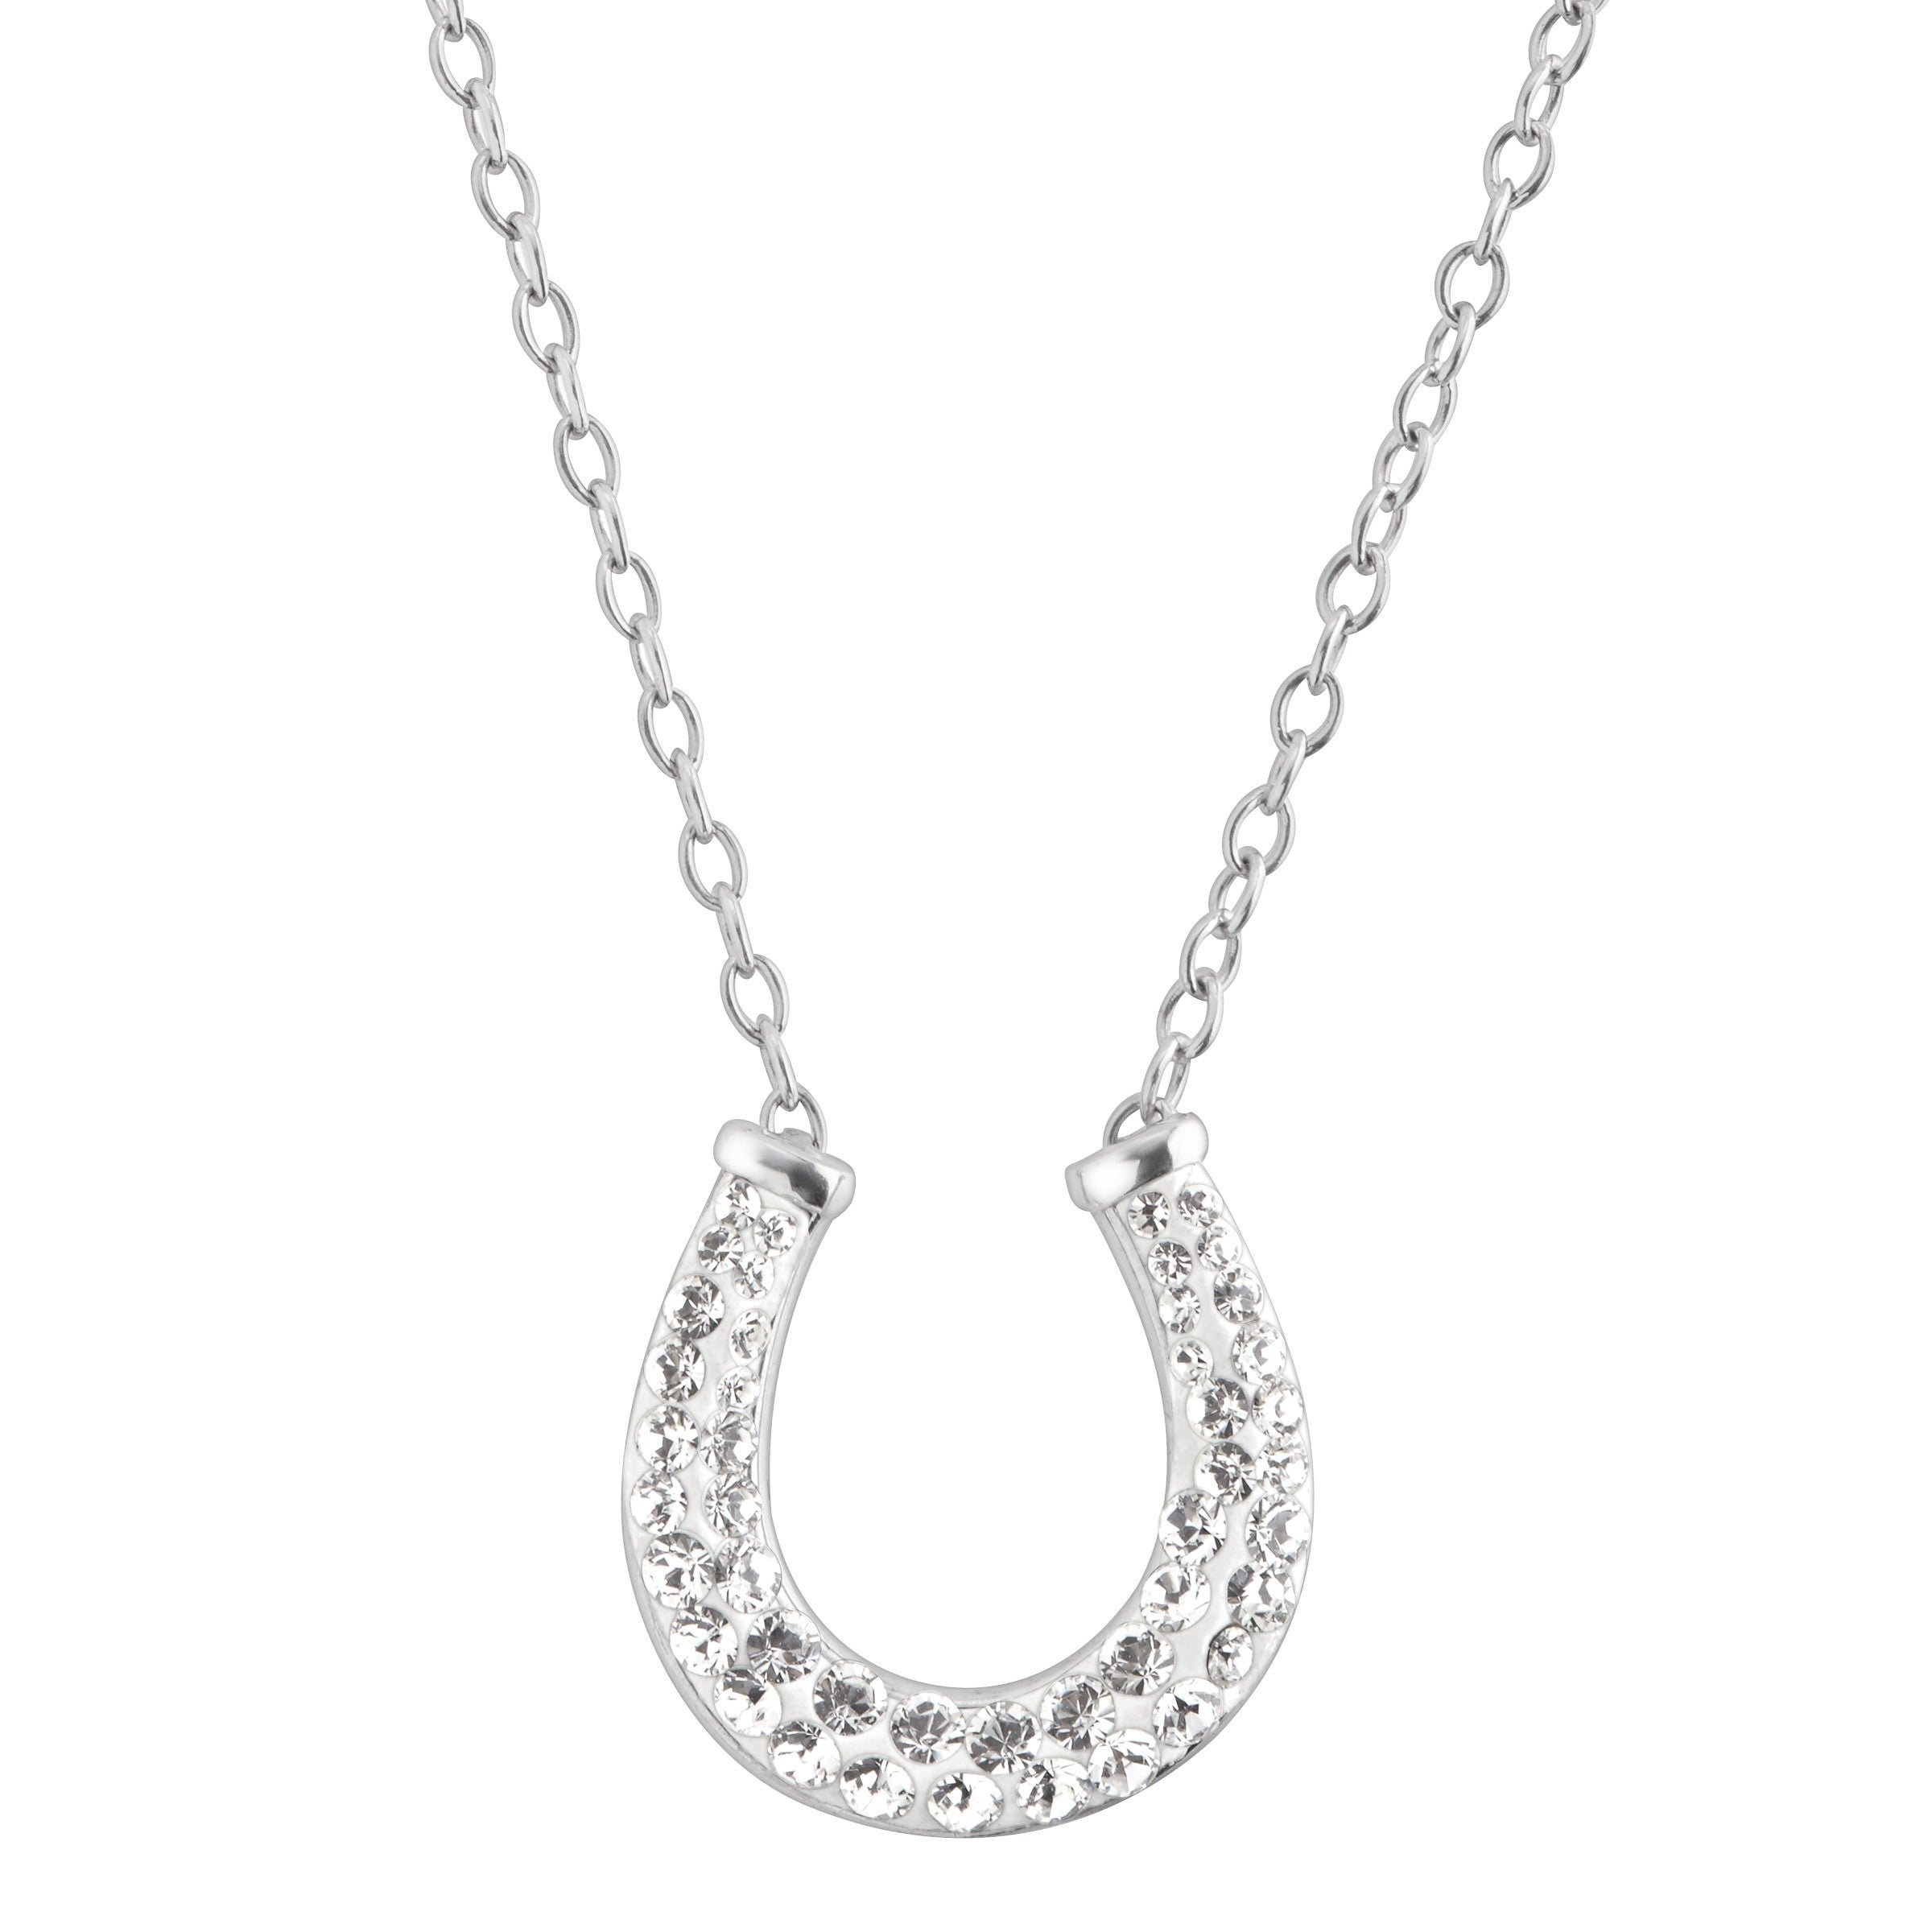 bittar jewelry necklaces products enlarged crystal horseshoe alexis pendant necklace